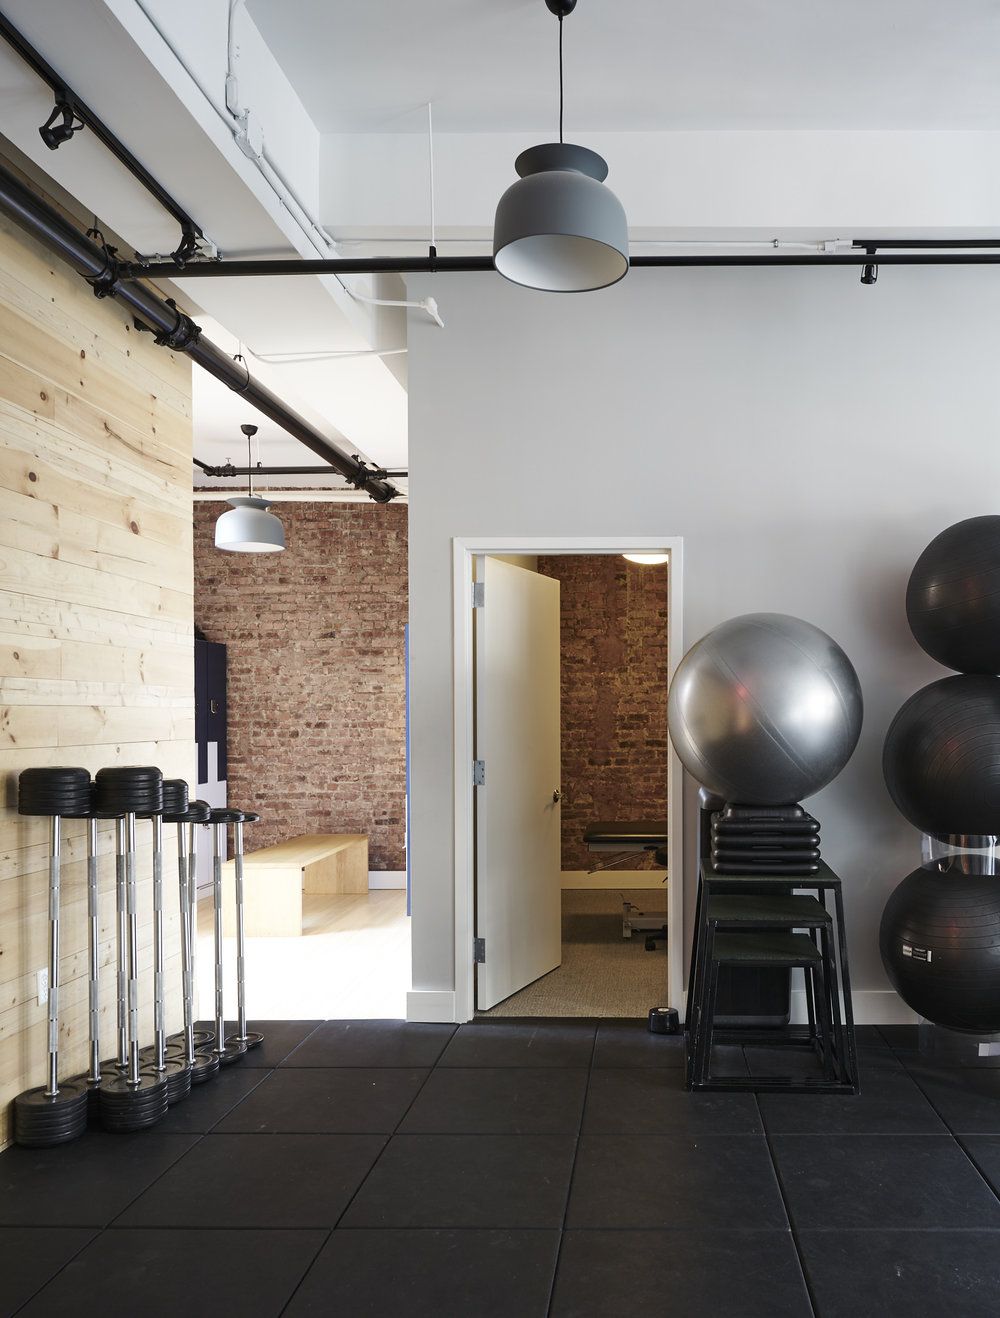 Interior design workout room in modern Pilates studio in Chelsea, NY